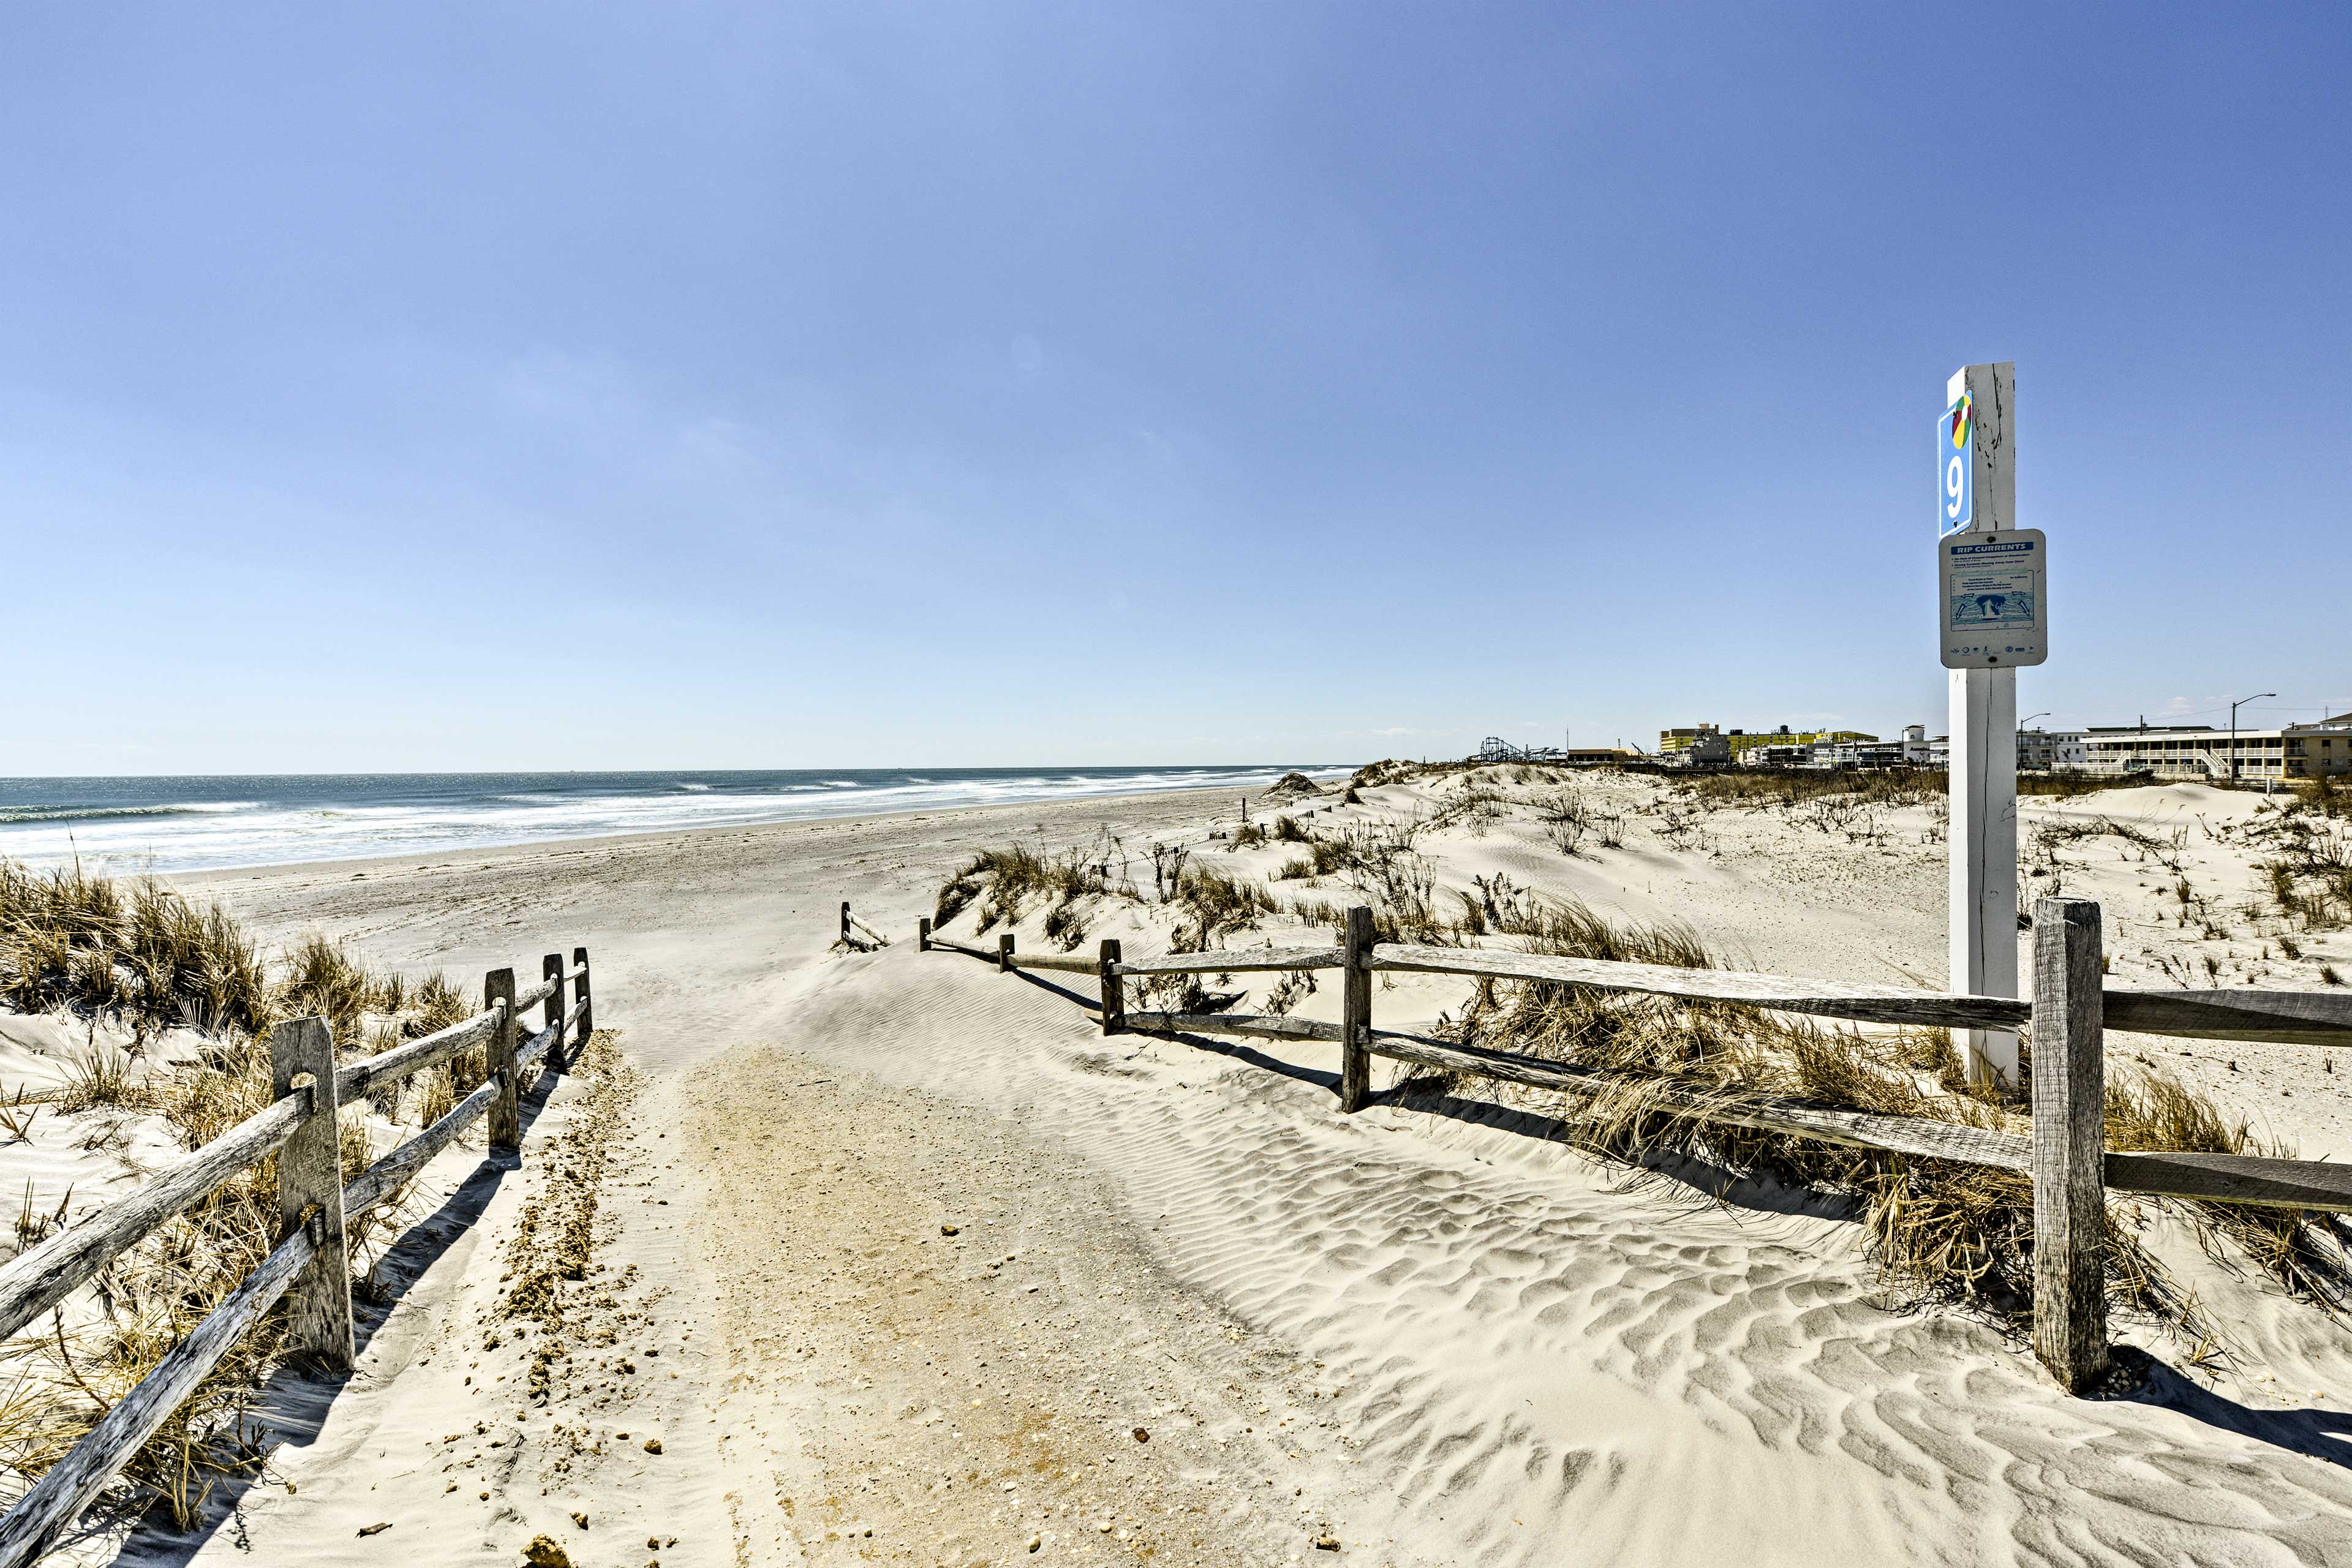 Beaches, boardwalks, restaurants & more are just outside the home's front door!